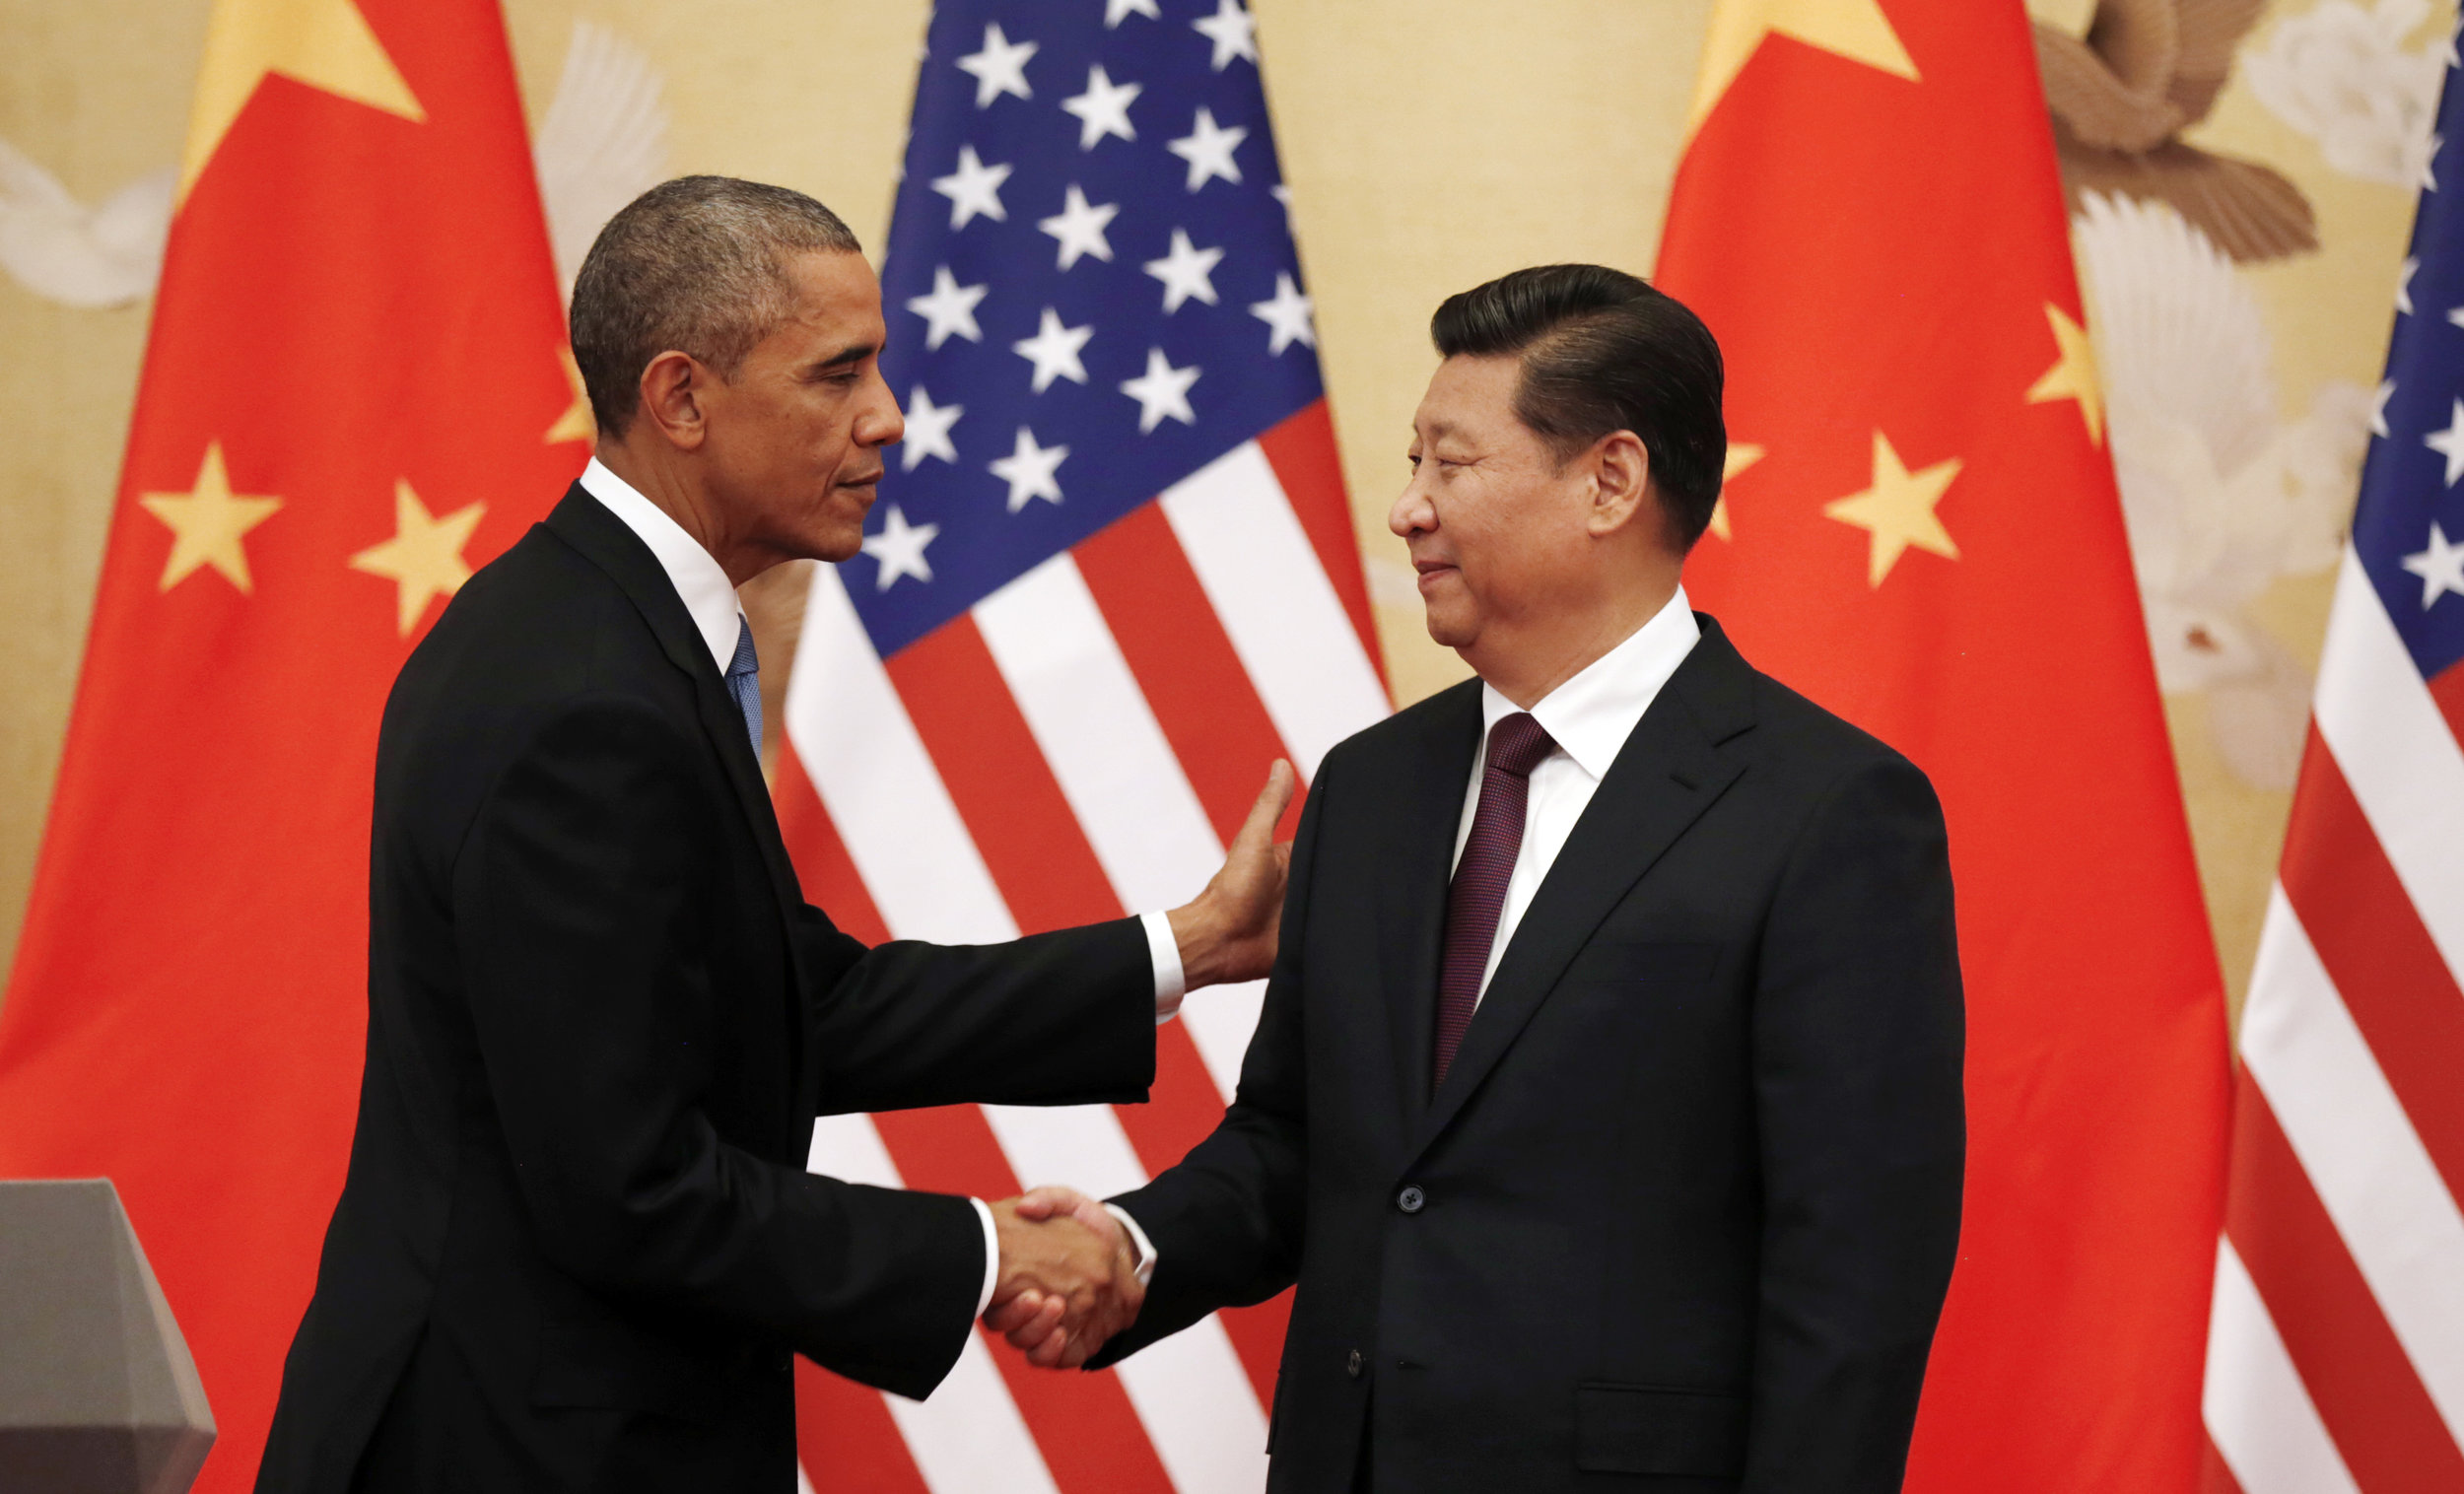 Then U.S. President Barack Obama and China's Xi Jinping in the Great Hall of the People in Beijing November 12, 2014. (Kevin Lamarque/Reuters)